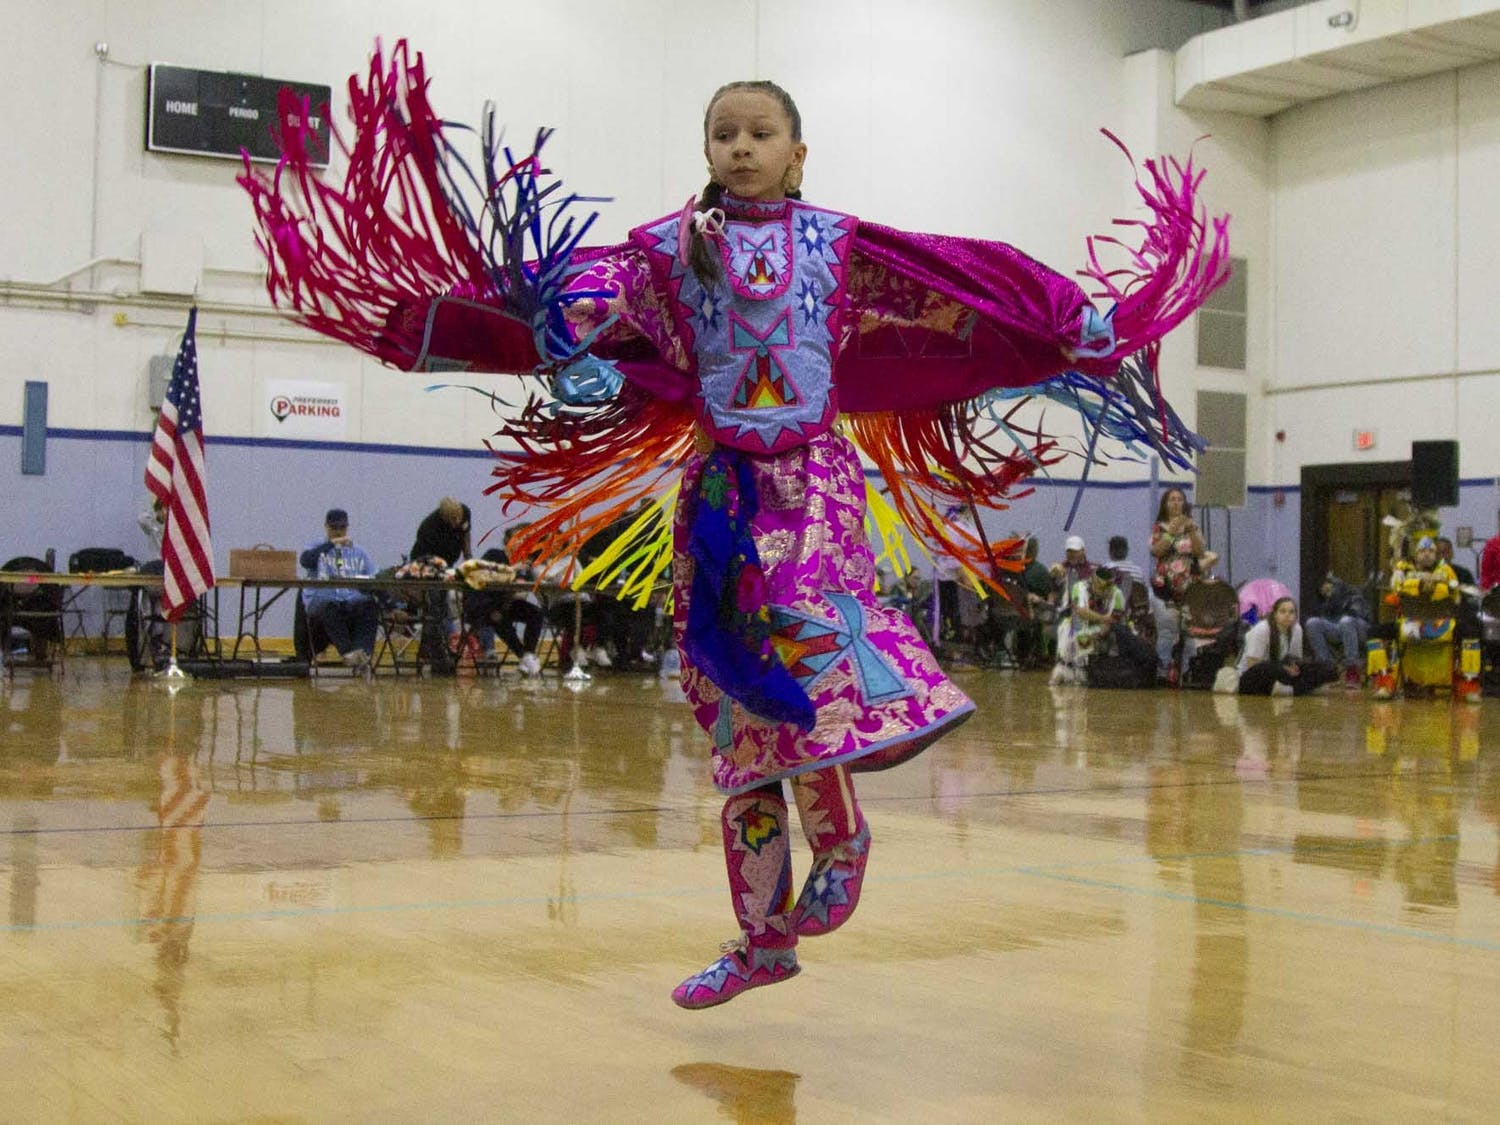 Hollister resident Linzie Evans, 10, and member of the Haliwa-Saponi tribe dances during the Carolina Indian Circle's 33rd Annual Powwow in Fezter Gym on Saturday, Feb. 29, 2020.